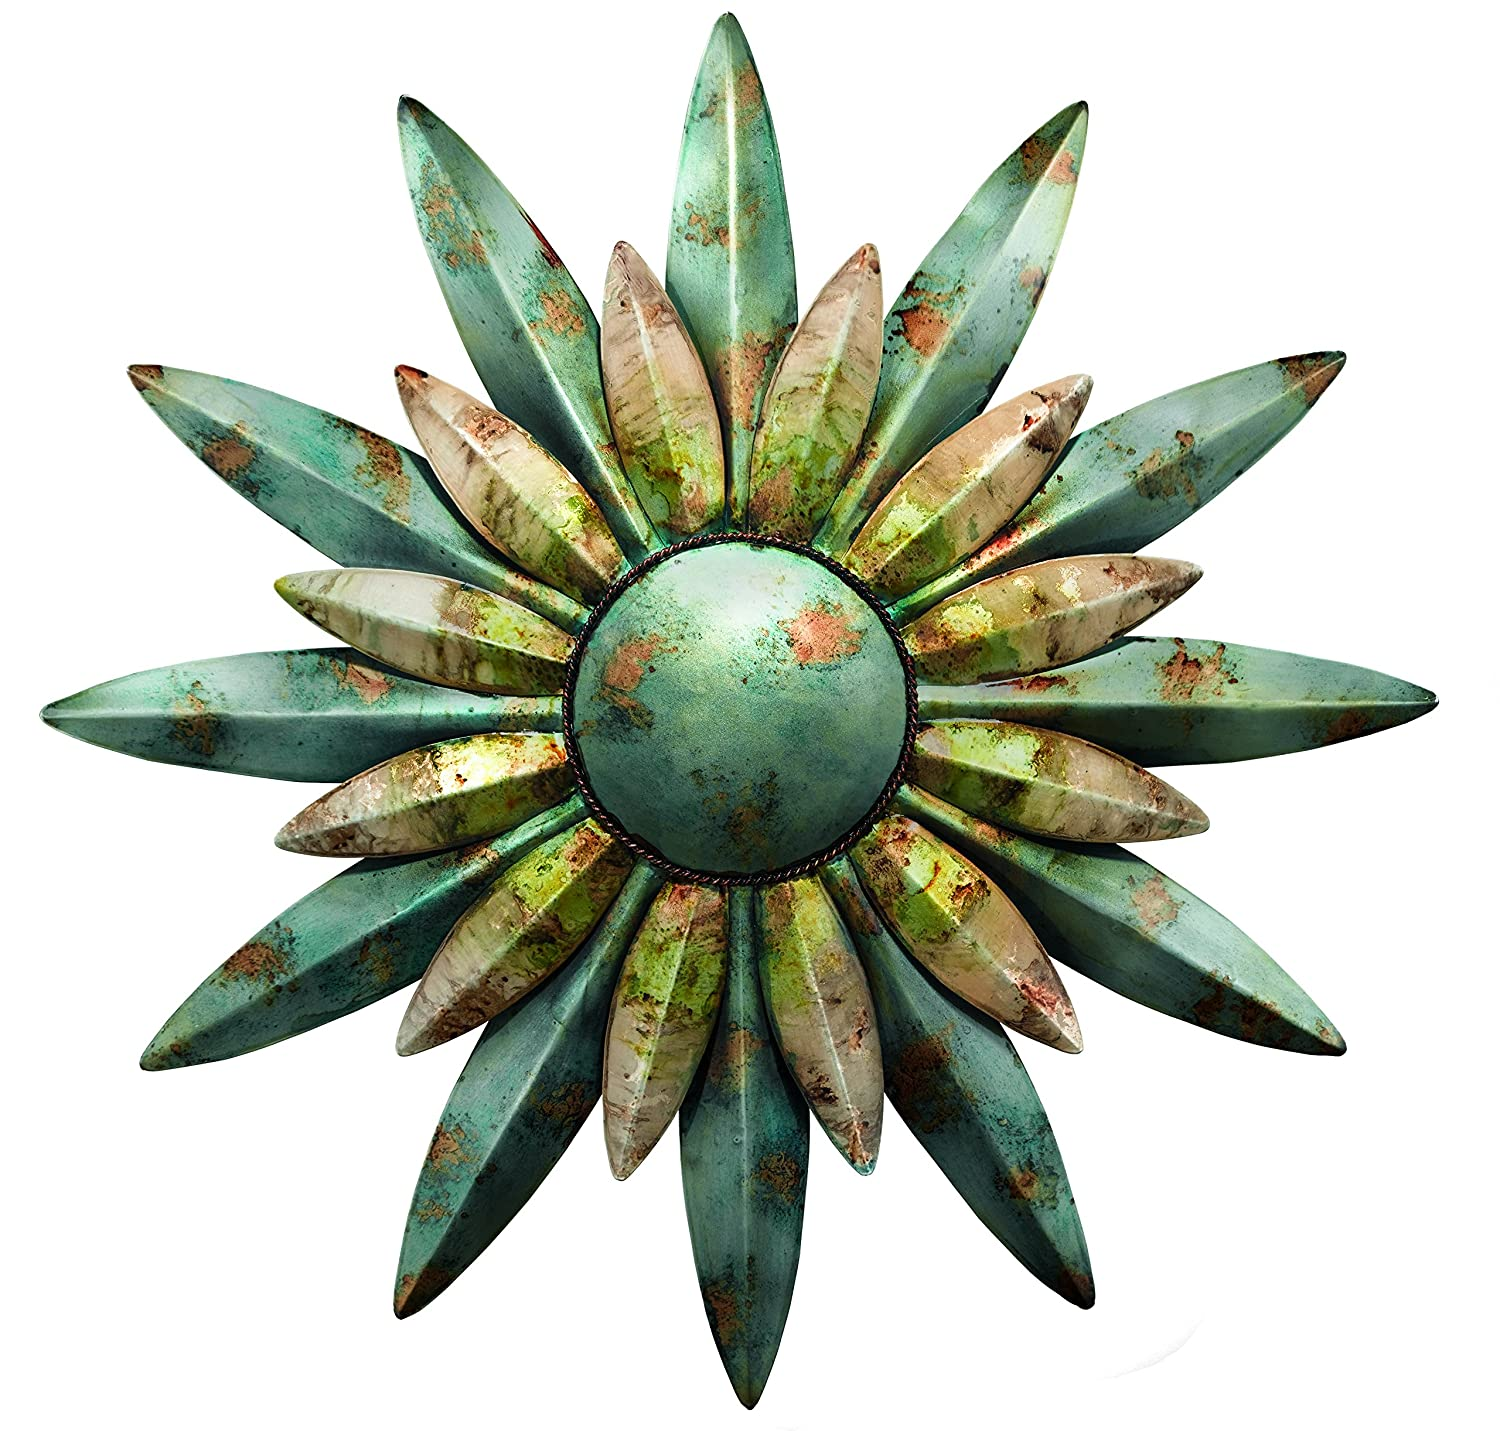 Amazon.com : Regal Art & Gift 10200 Sunburst Sun Wall Decor, Aqua ...